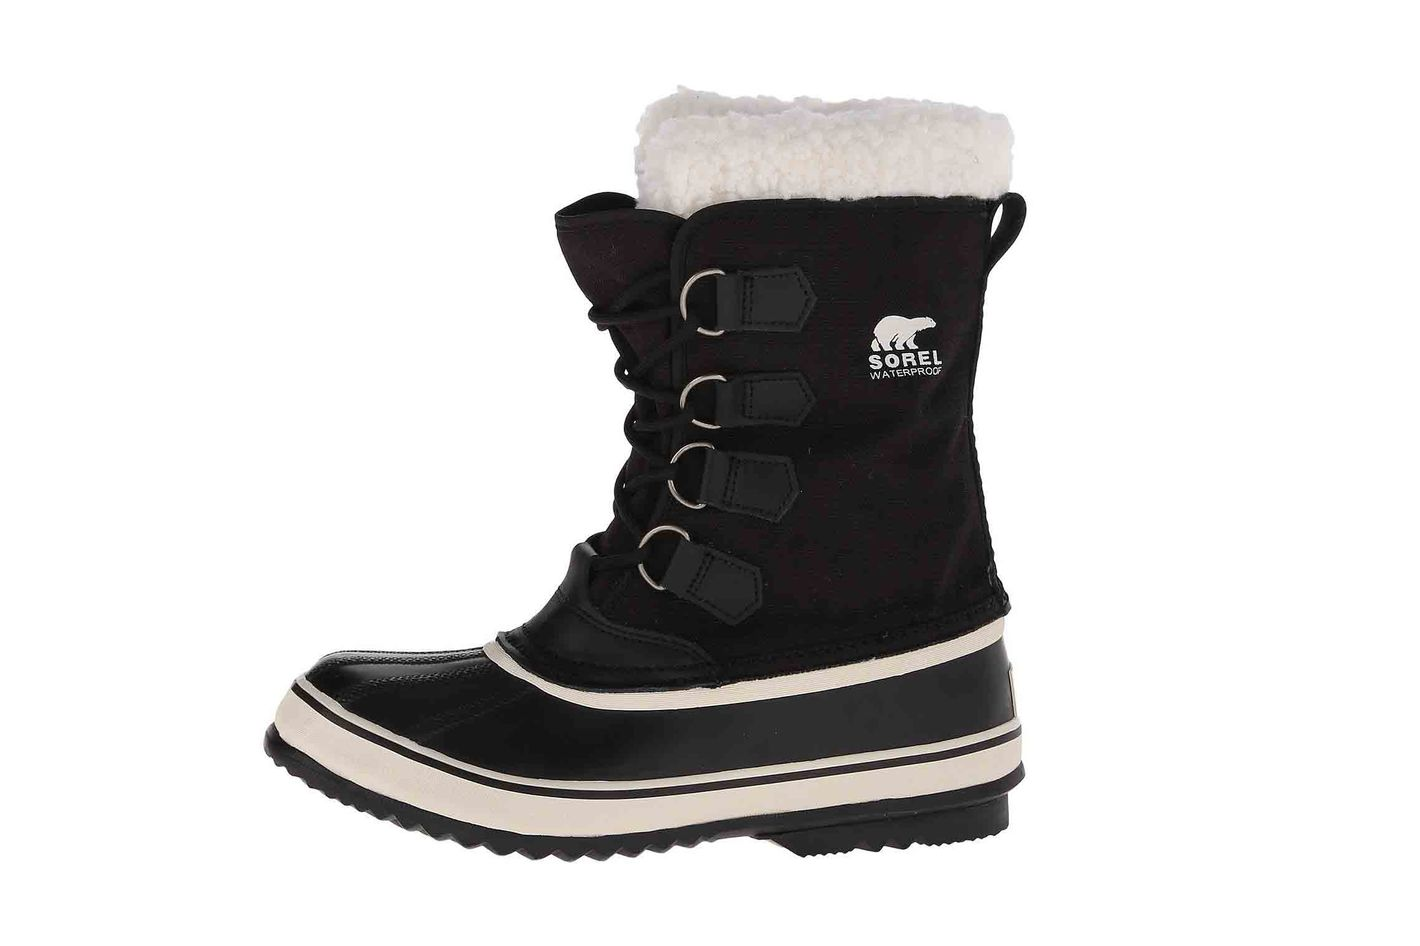 bdaab228b61a Best Winter Fashion Boots for Women 2018  Stylish Snow Boots